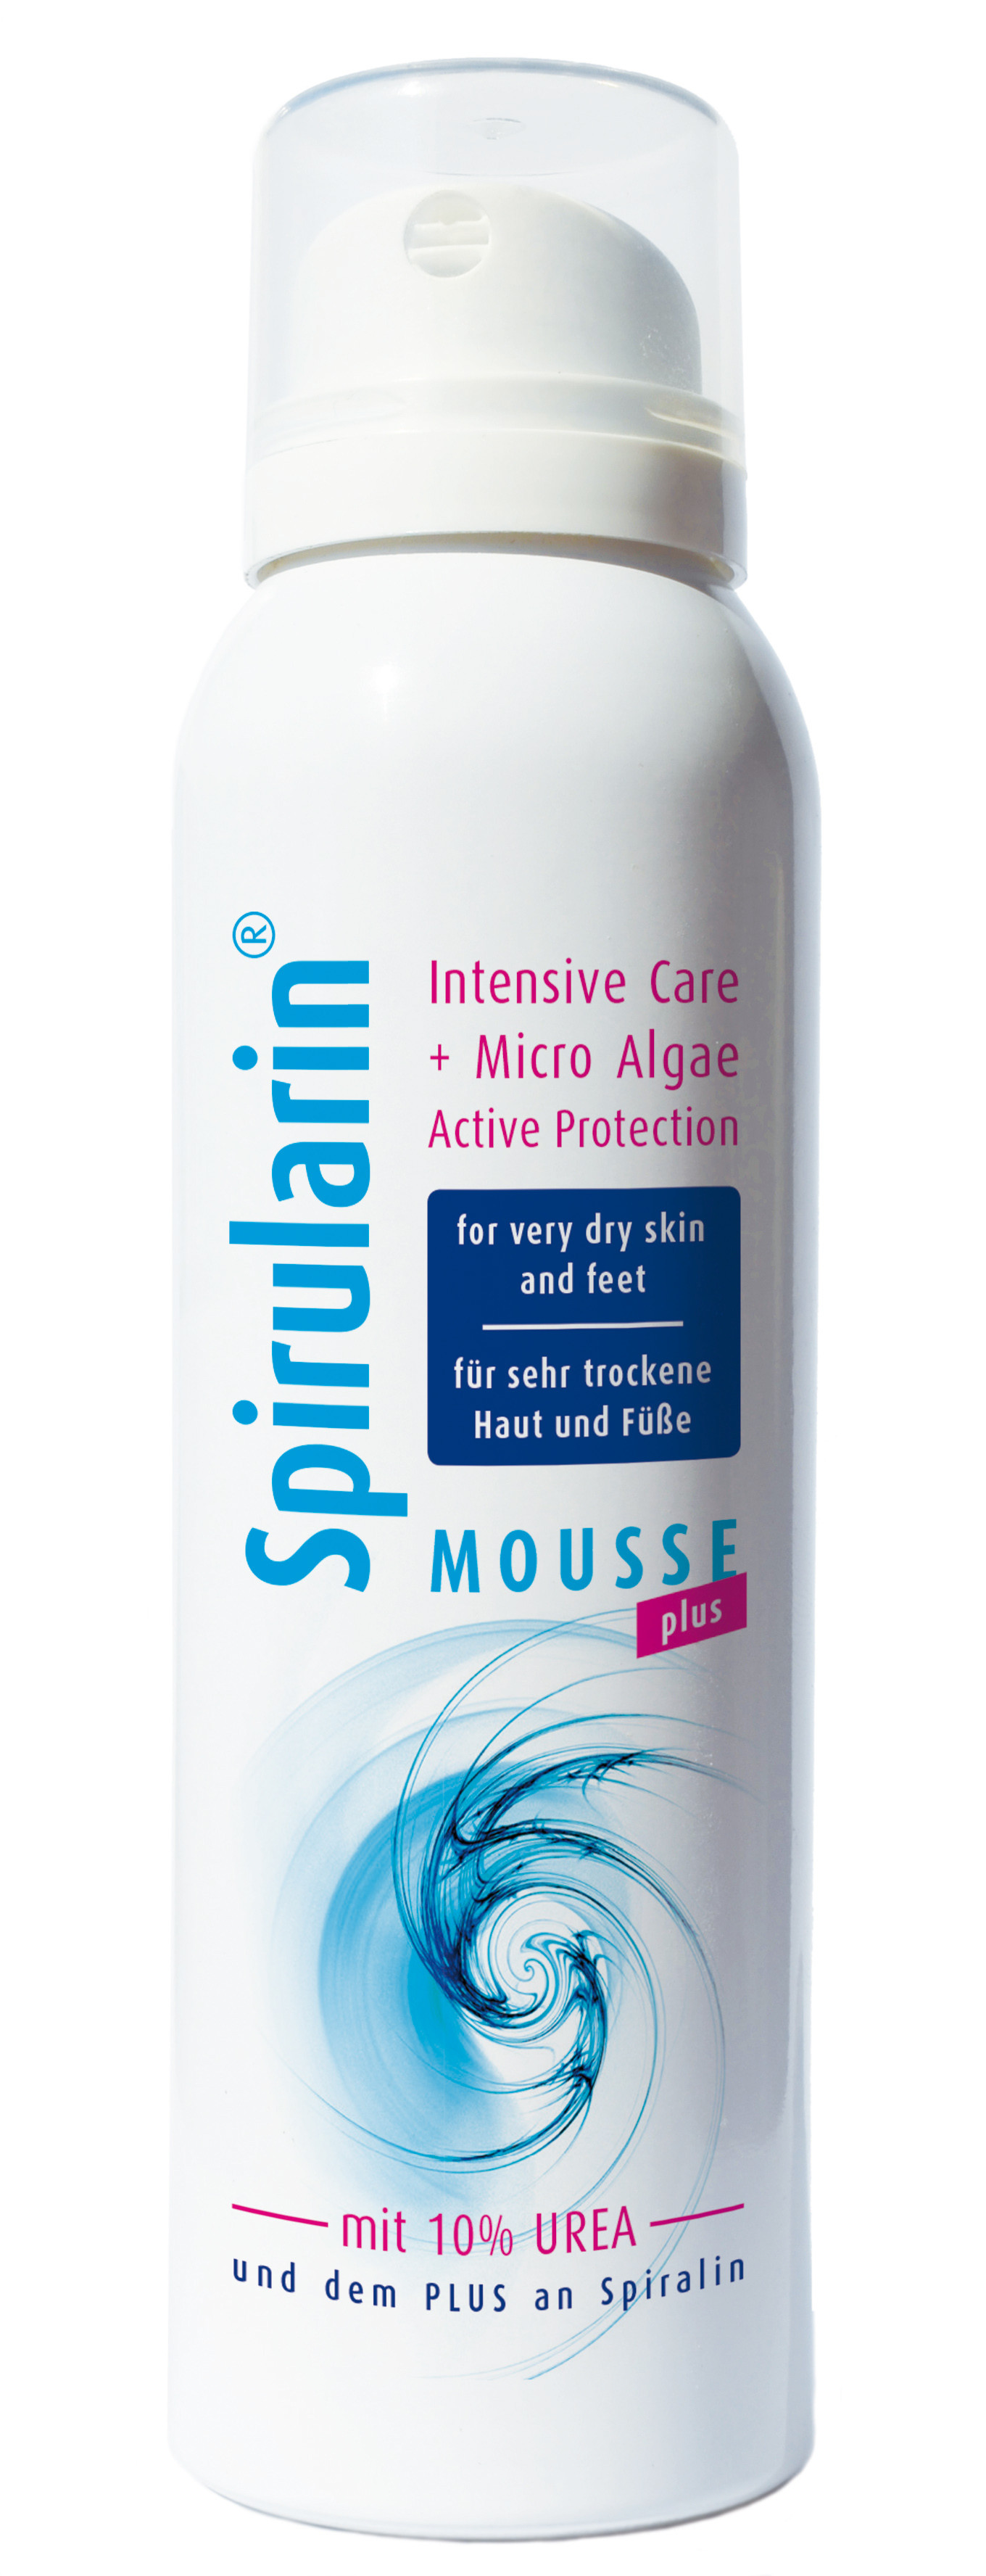 Spirularin Mousse Plus 125ml